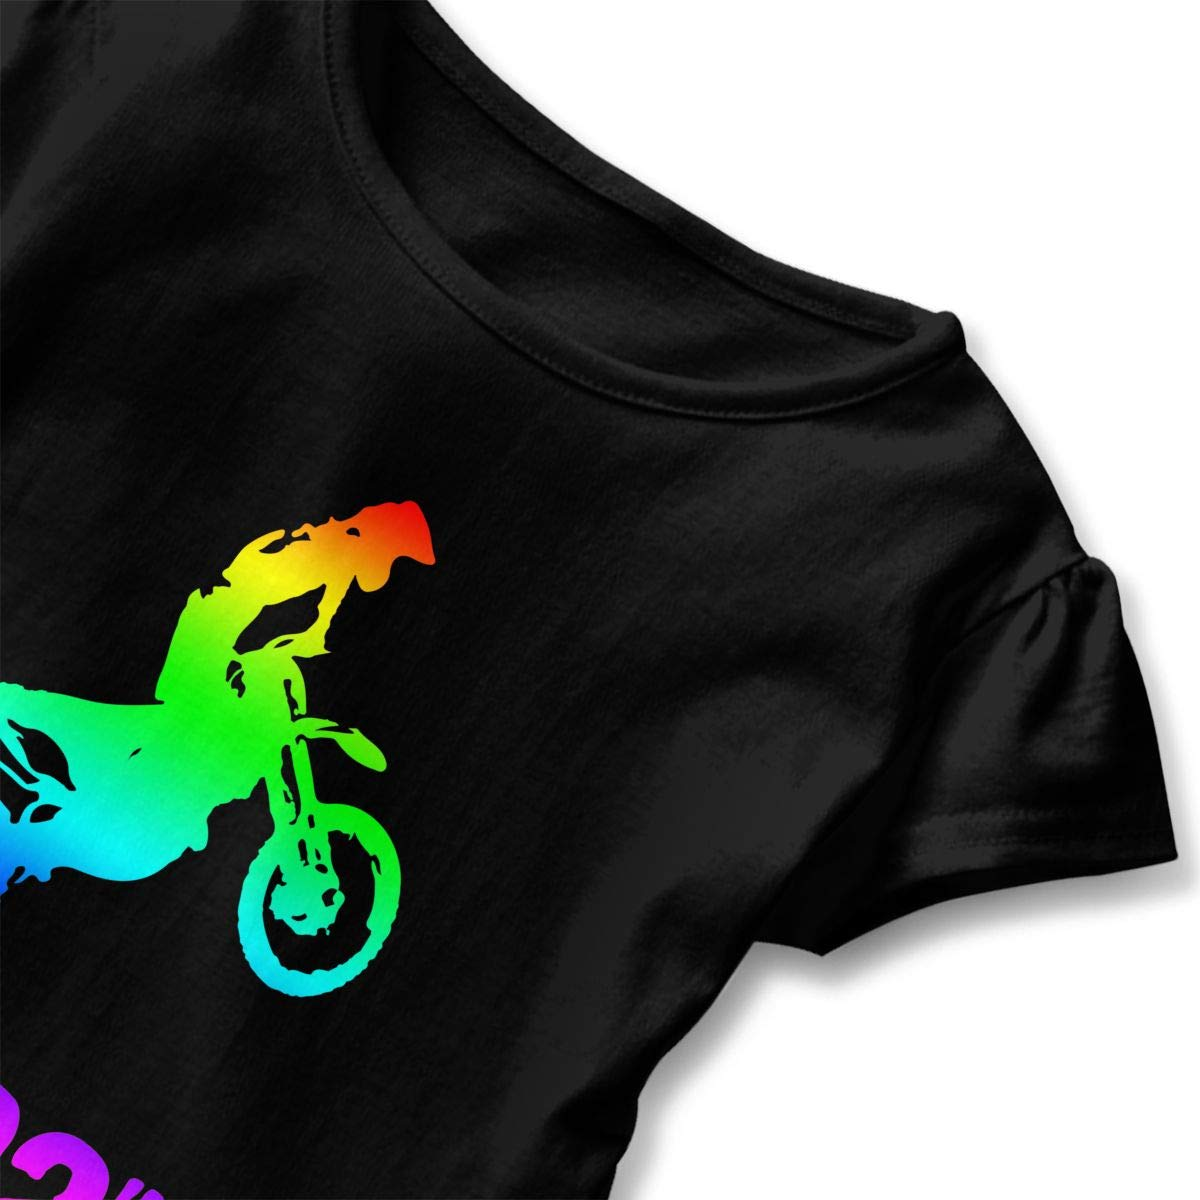 HYBDX9T Toddler Baby Girl Brraaap Dirt Bike Motocross-3 Funny Short Sleeve Cotton T Shirts Basic Tops Tee Clothes